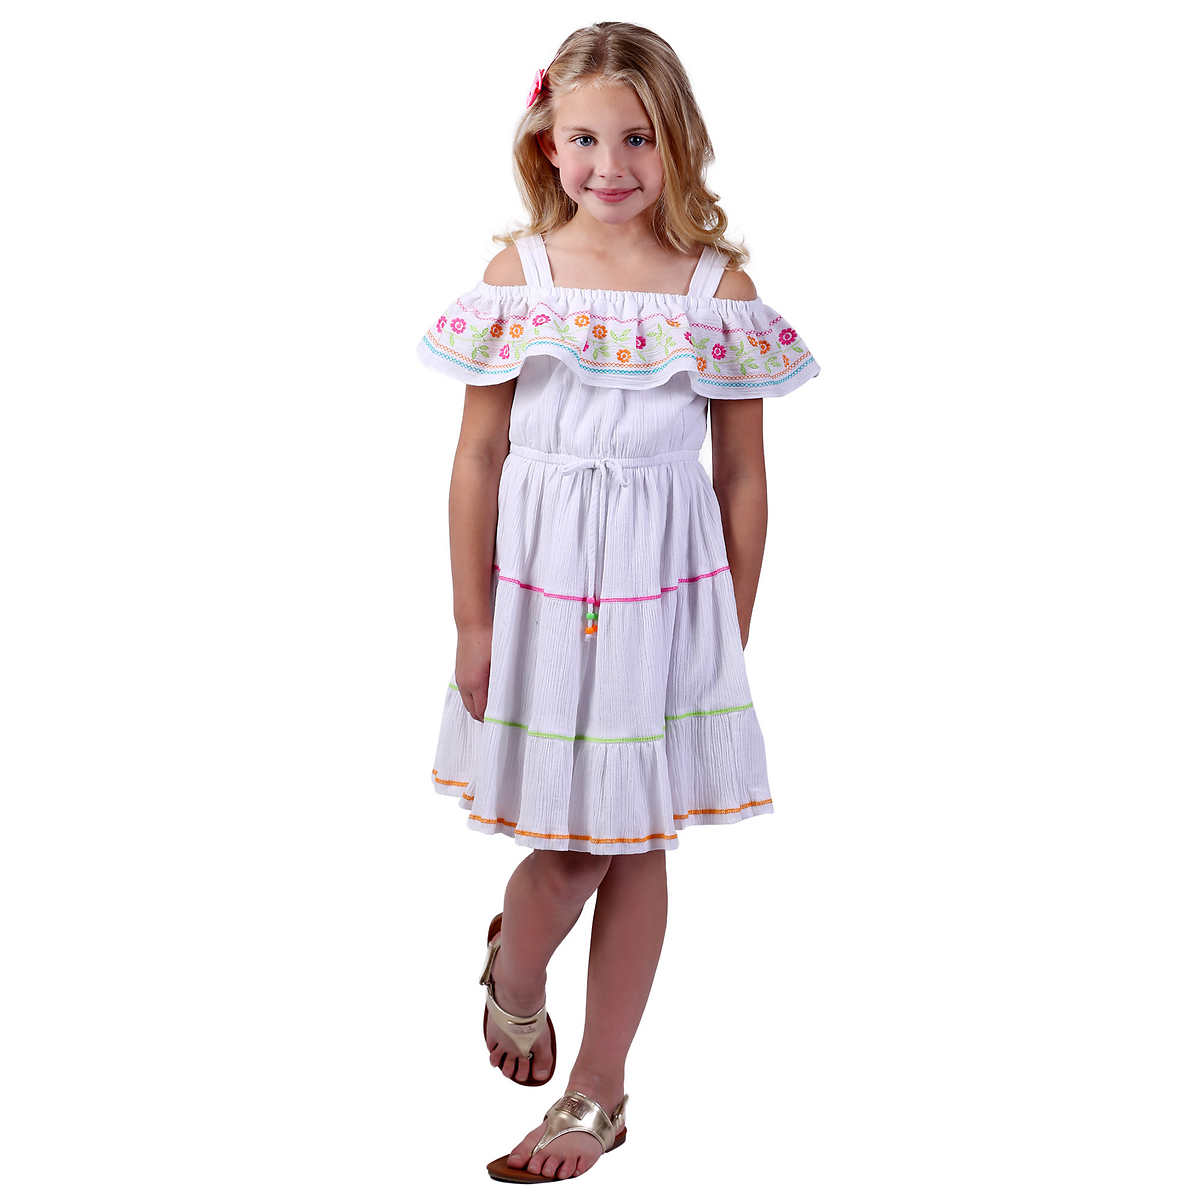 Plain flower girl dresses: Target5% Off W/ REDcard · Same Day Store Pick-Up · Free Shipping $35+ · Everyday Savings1,,+ followers on Twitter.